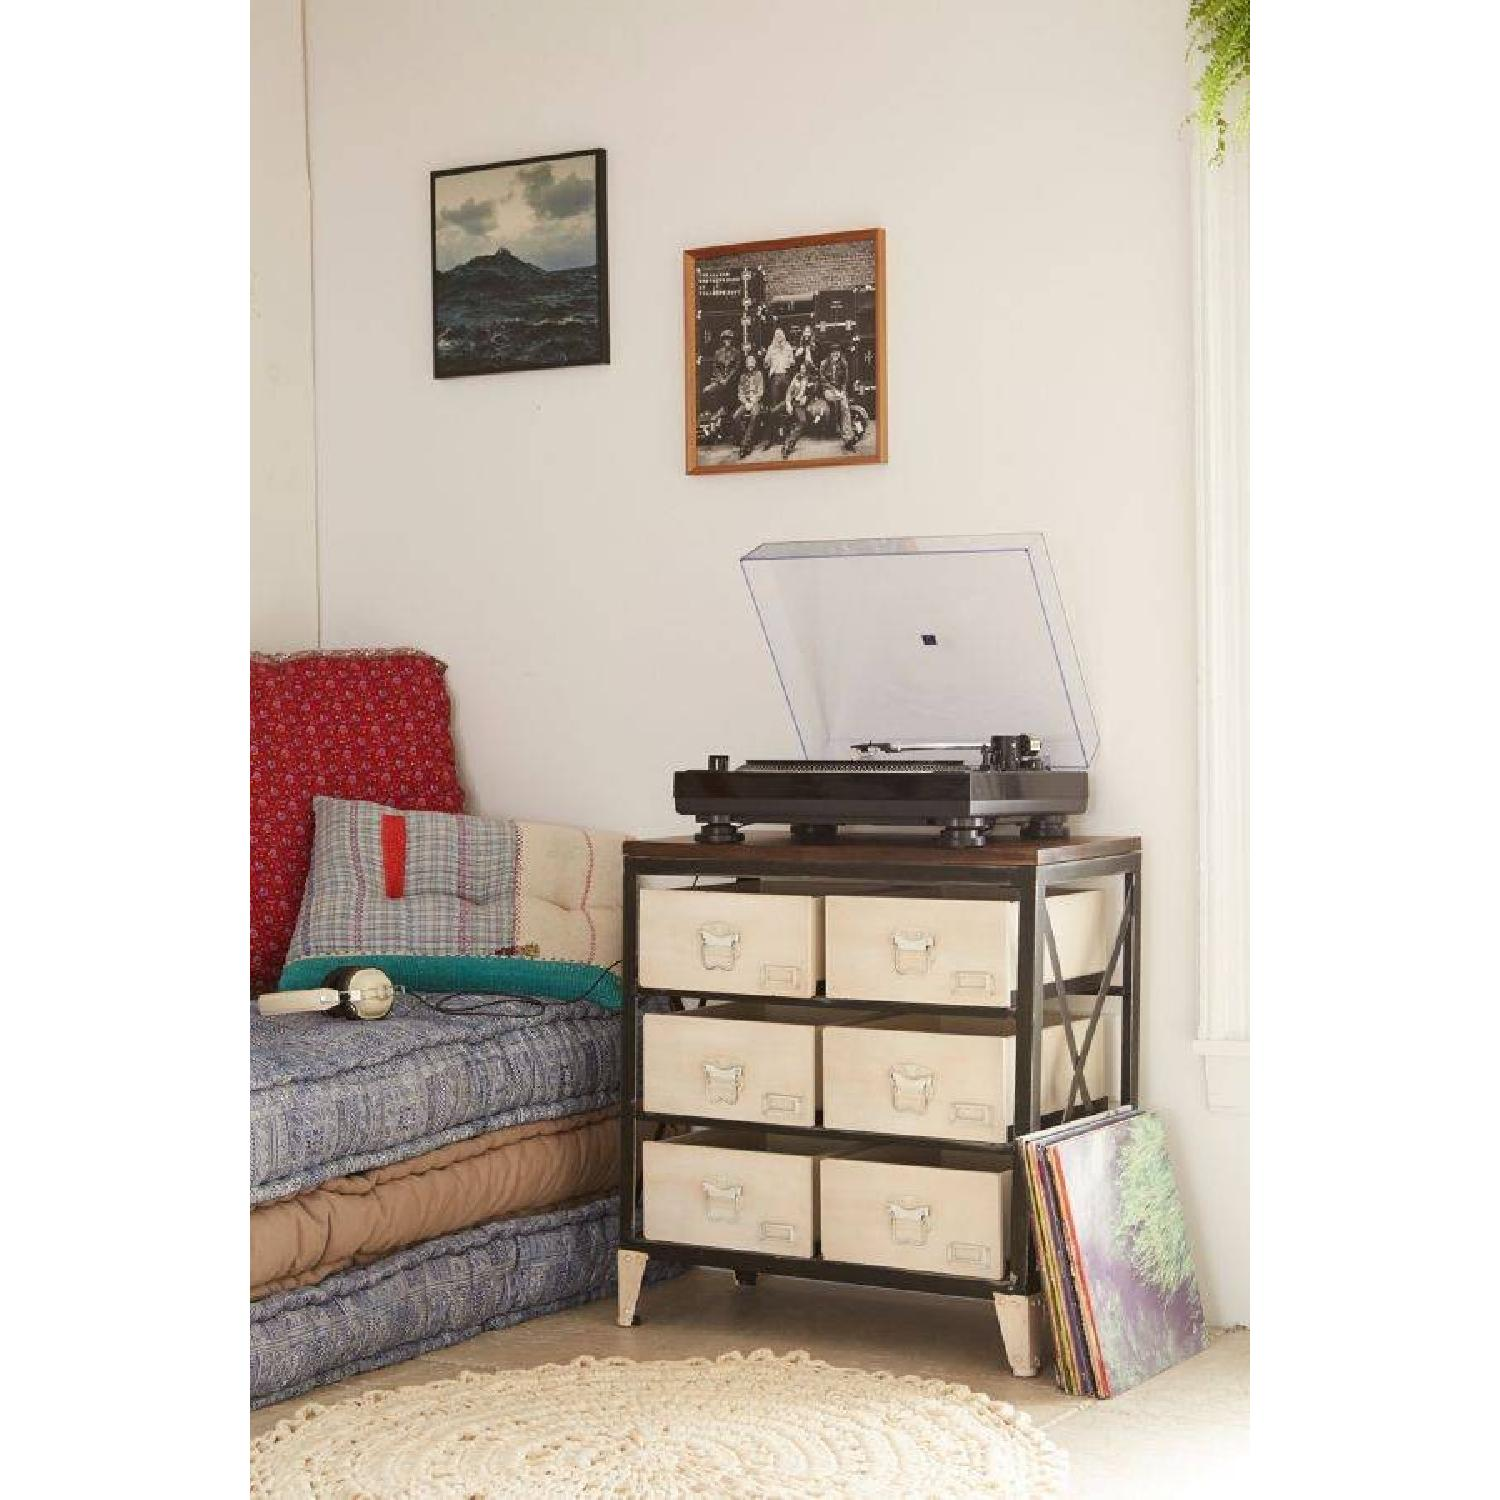 Urban Outfitters Mini Industrial Storage Chests - image-2